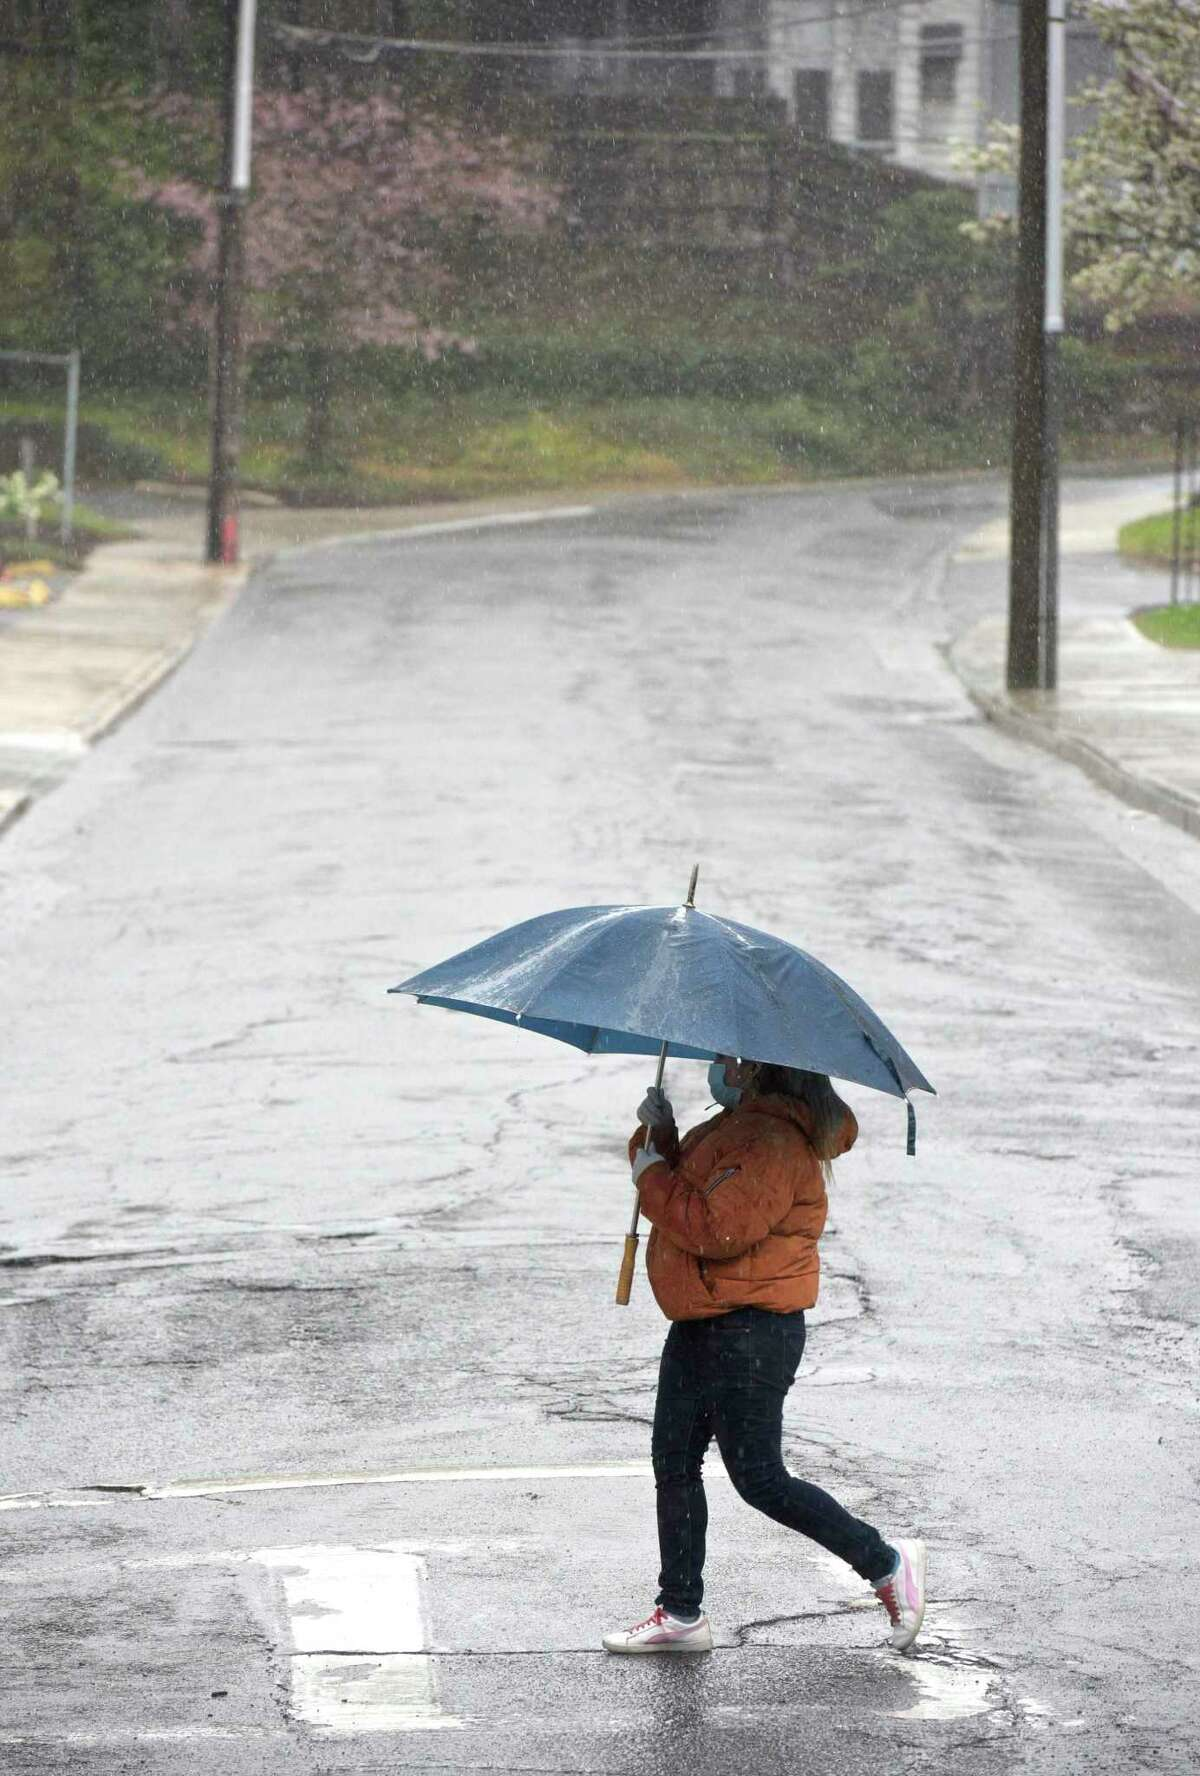 Heavy rains are expected to hit Connecticut on Wednesday, July 8, 2020. In this file photo, a pedestrian can be seen crossing Chapel Place while walking down Main Street in Danbury, Conn., on Monday, April 13, 2020.